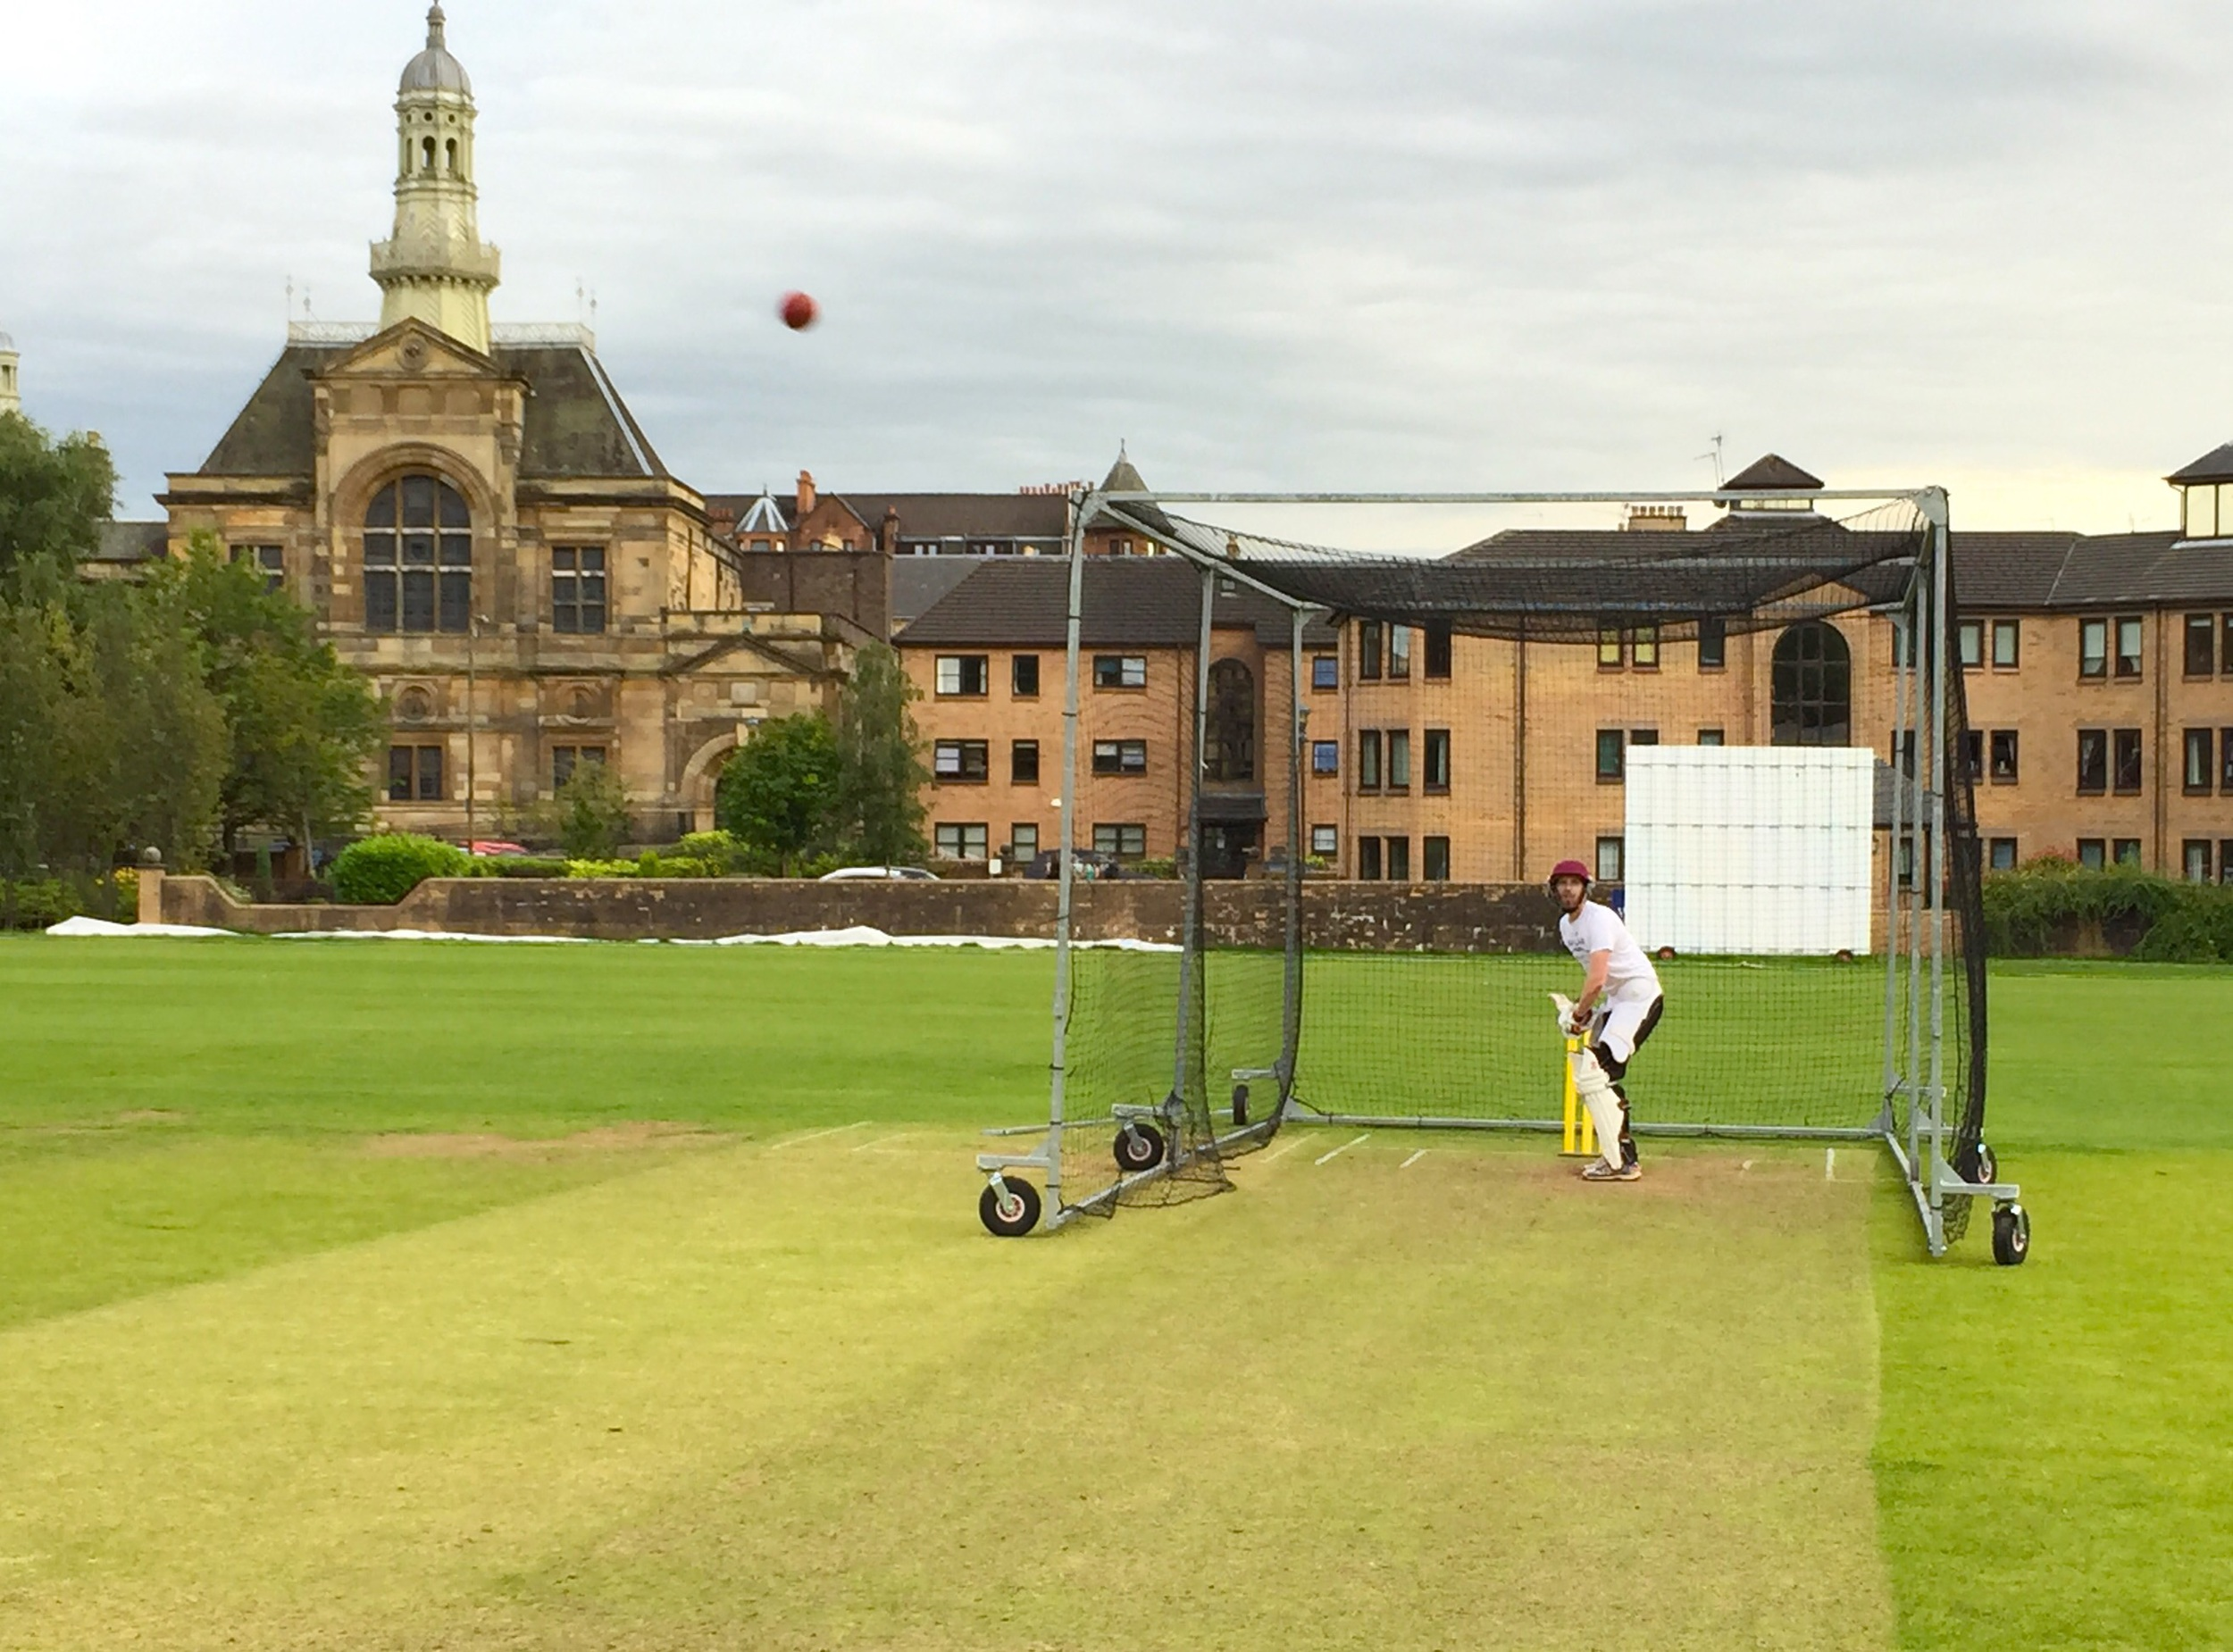 An outdoor net session at West of Scotland CC.